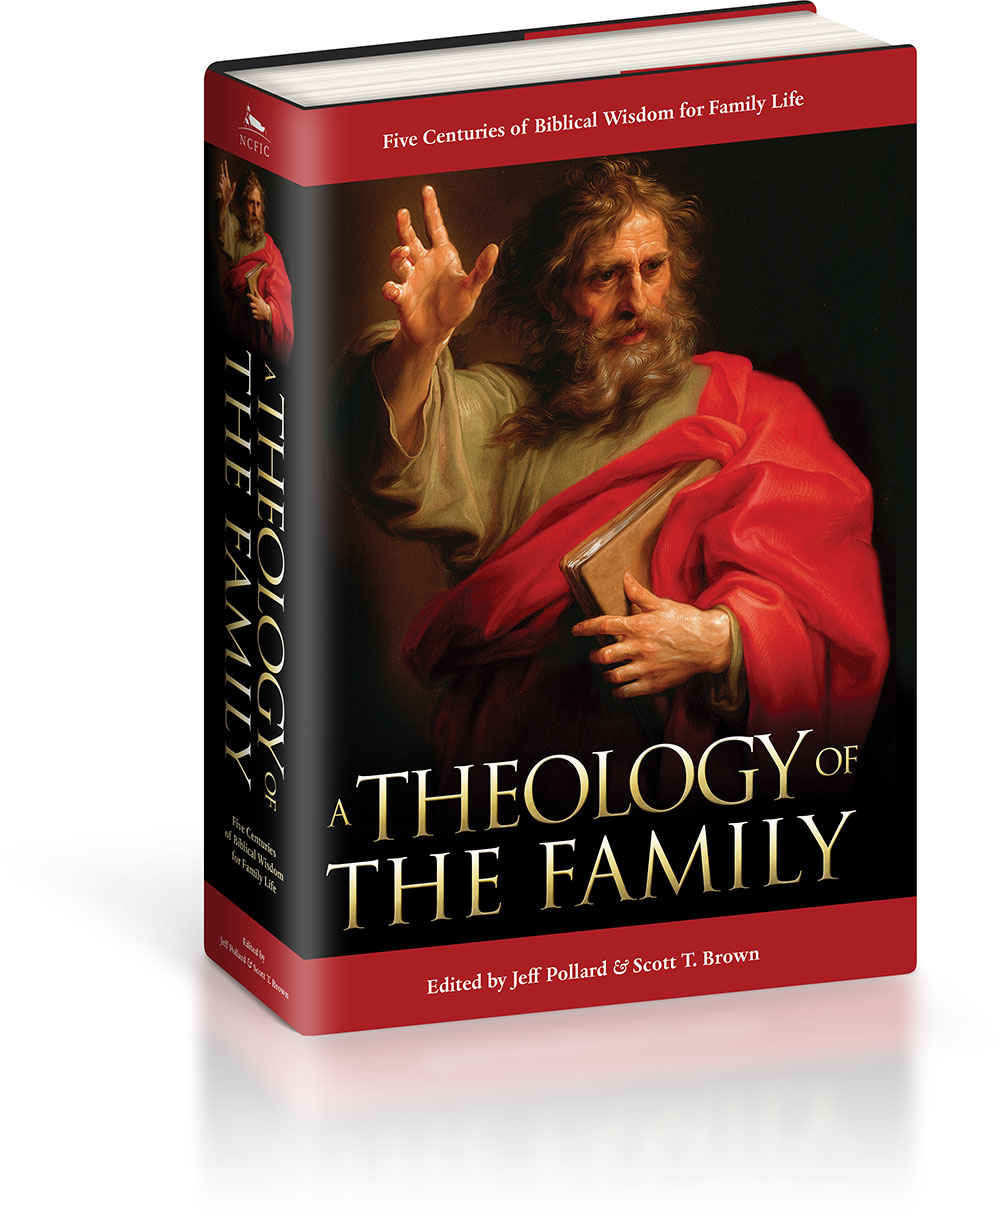 theology-of-the-family-mockup